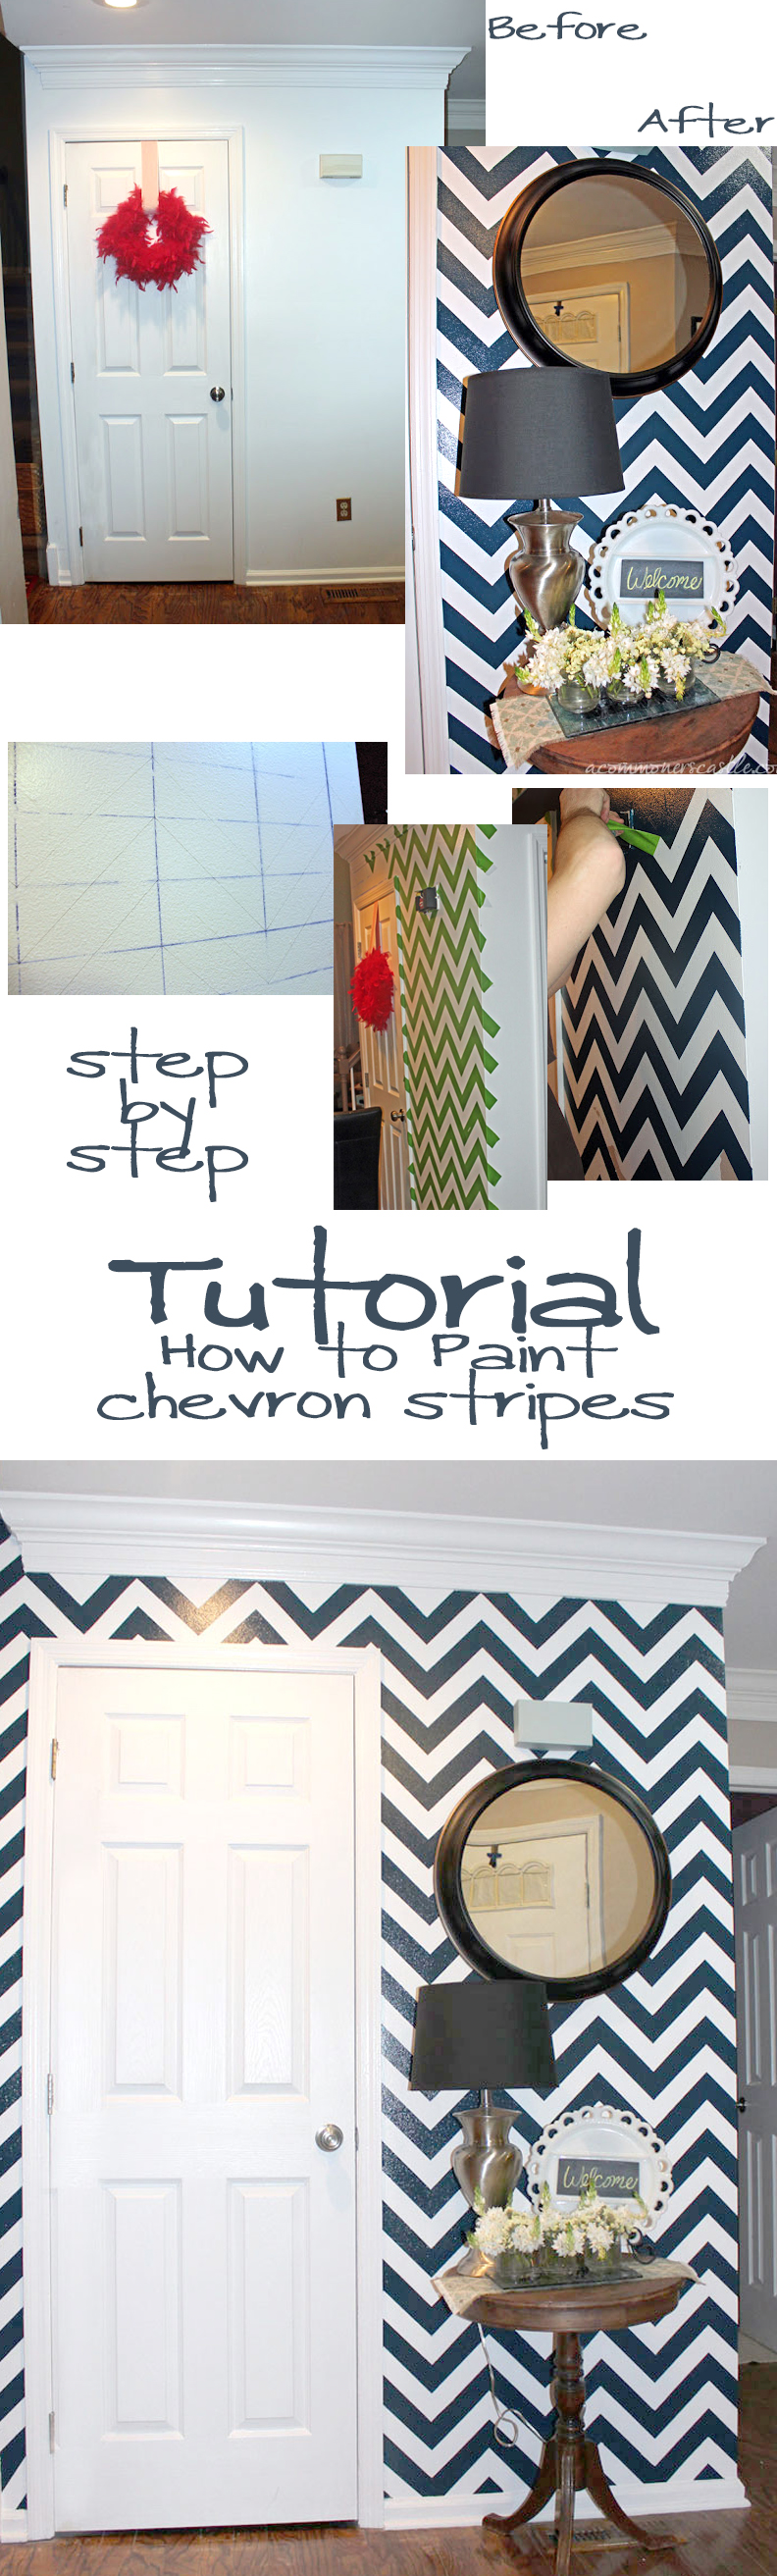 Chevron Stripe Painting Tutorial #chevron #stripe #painting #wall